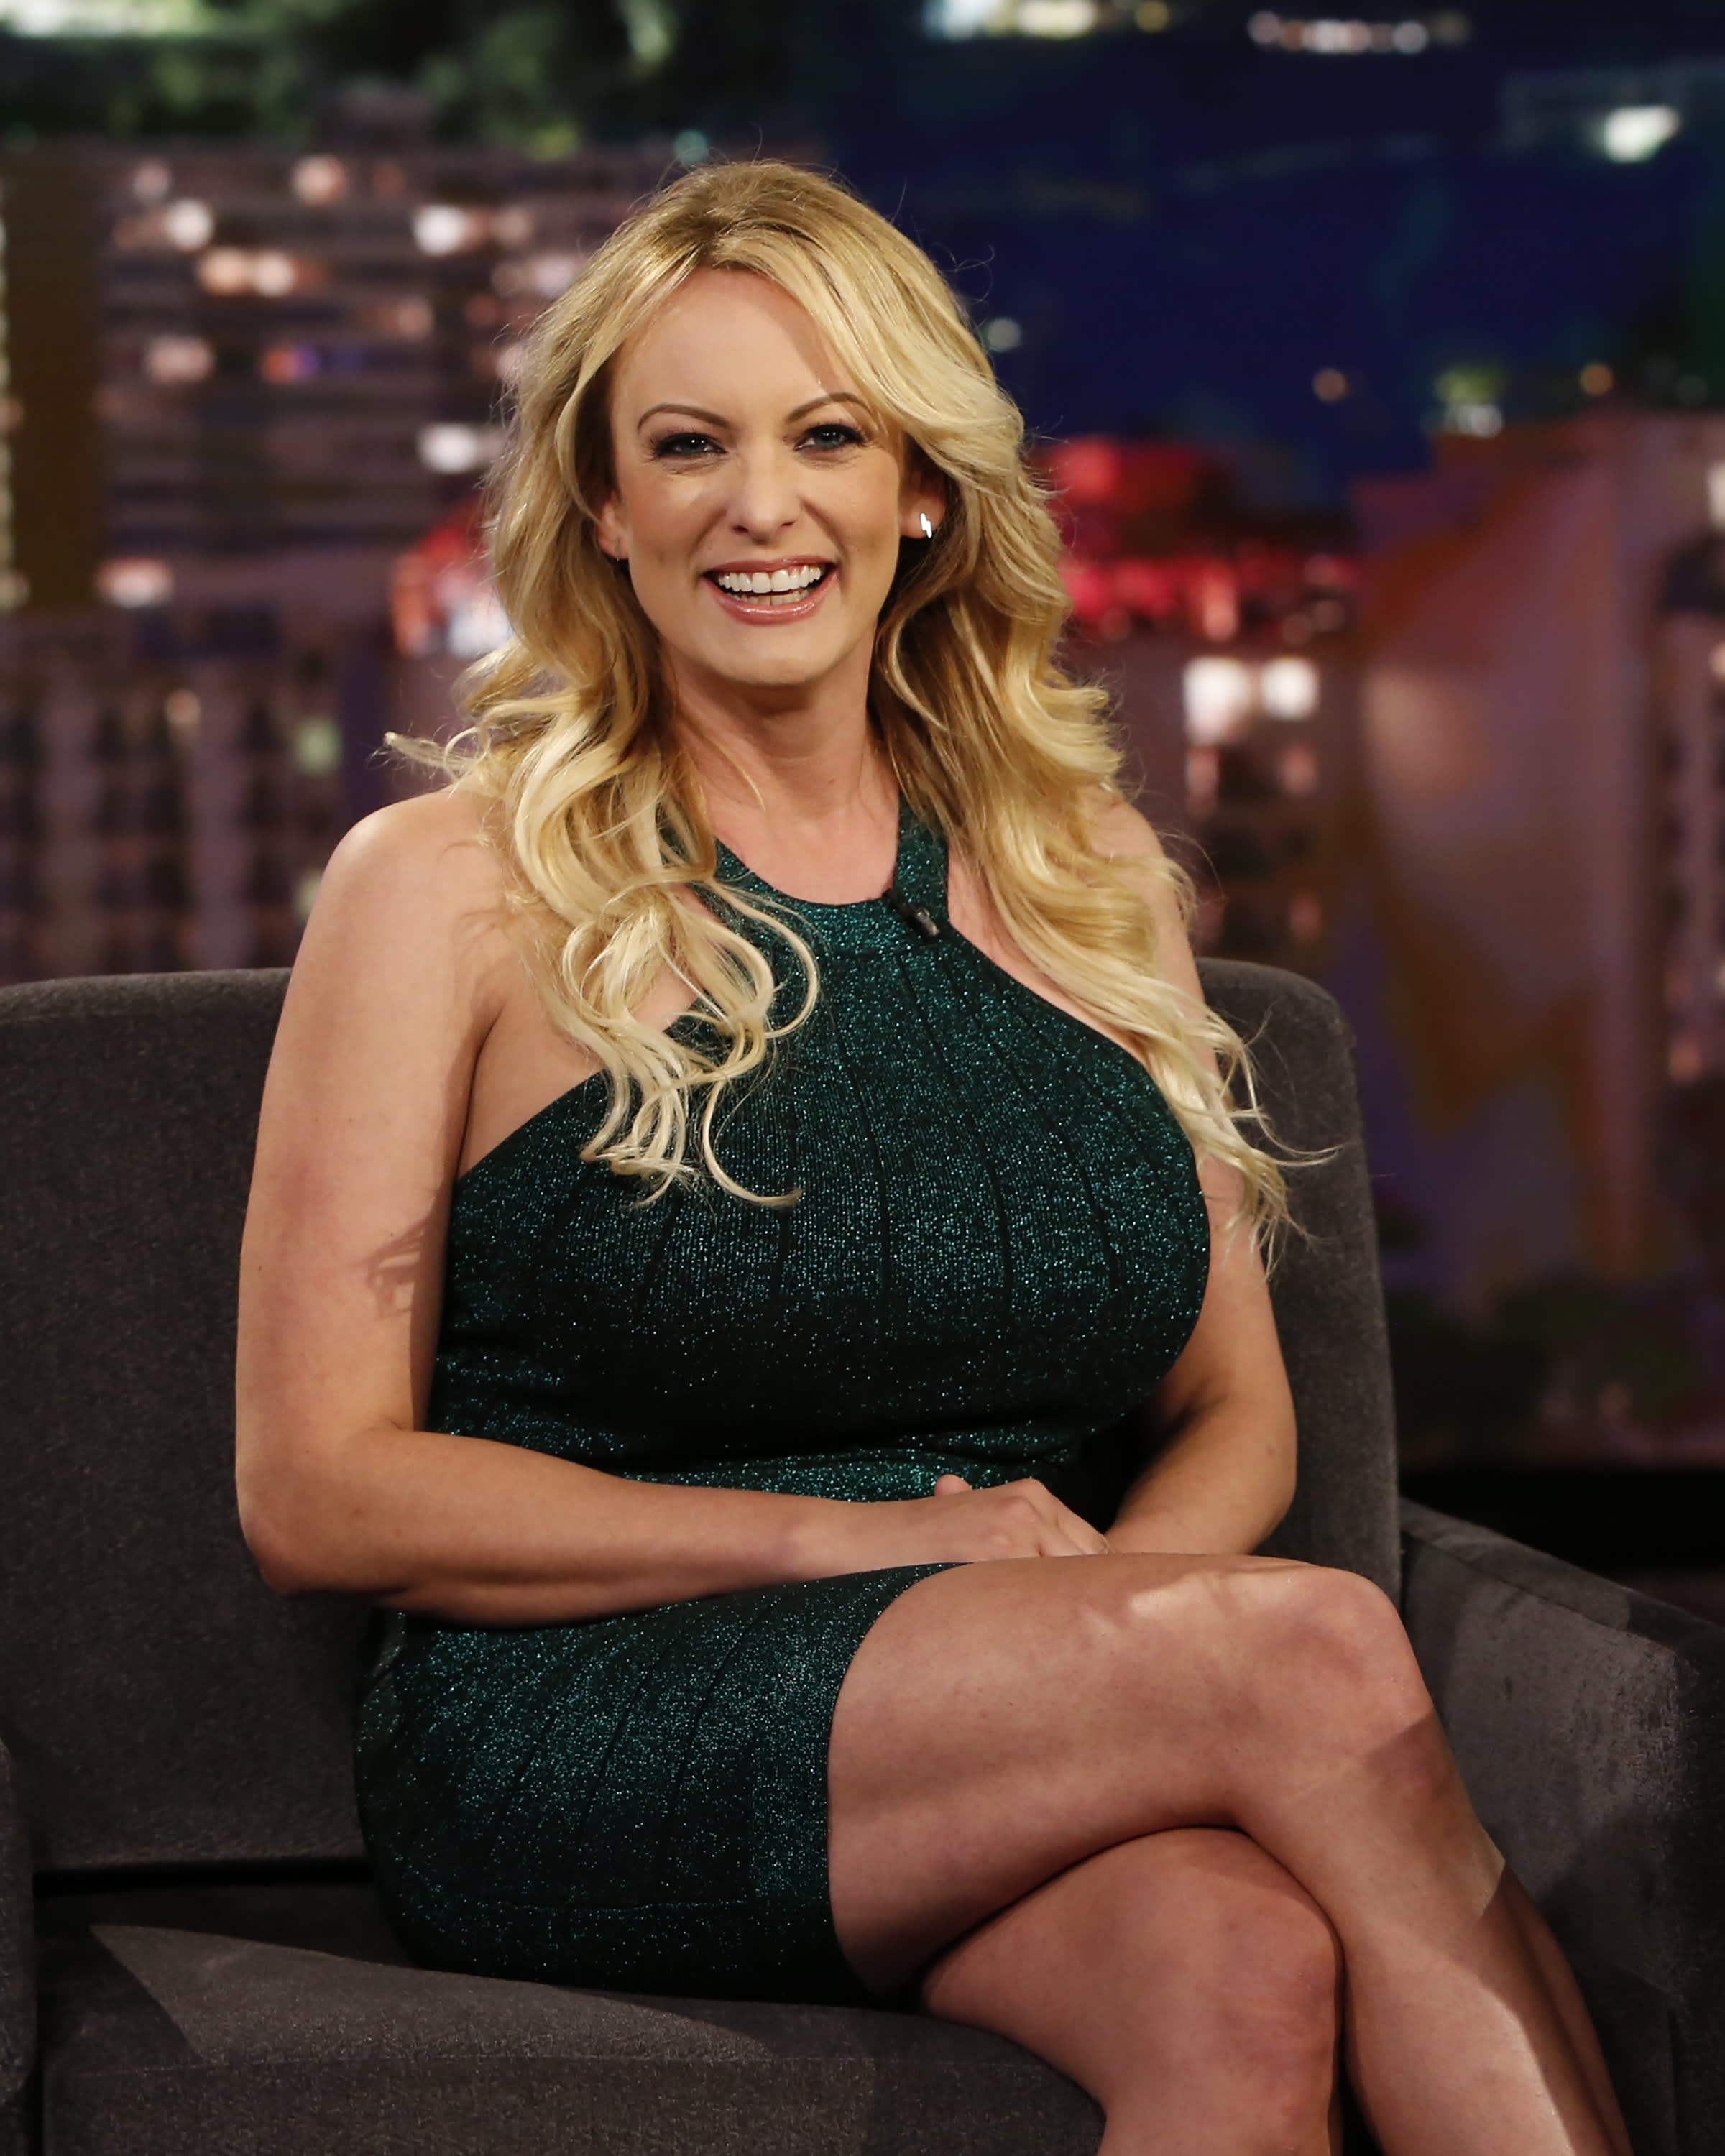 Stormy Daniels Announces Playboy Shoot